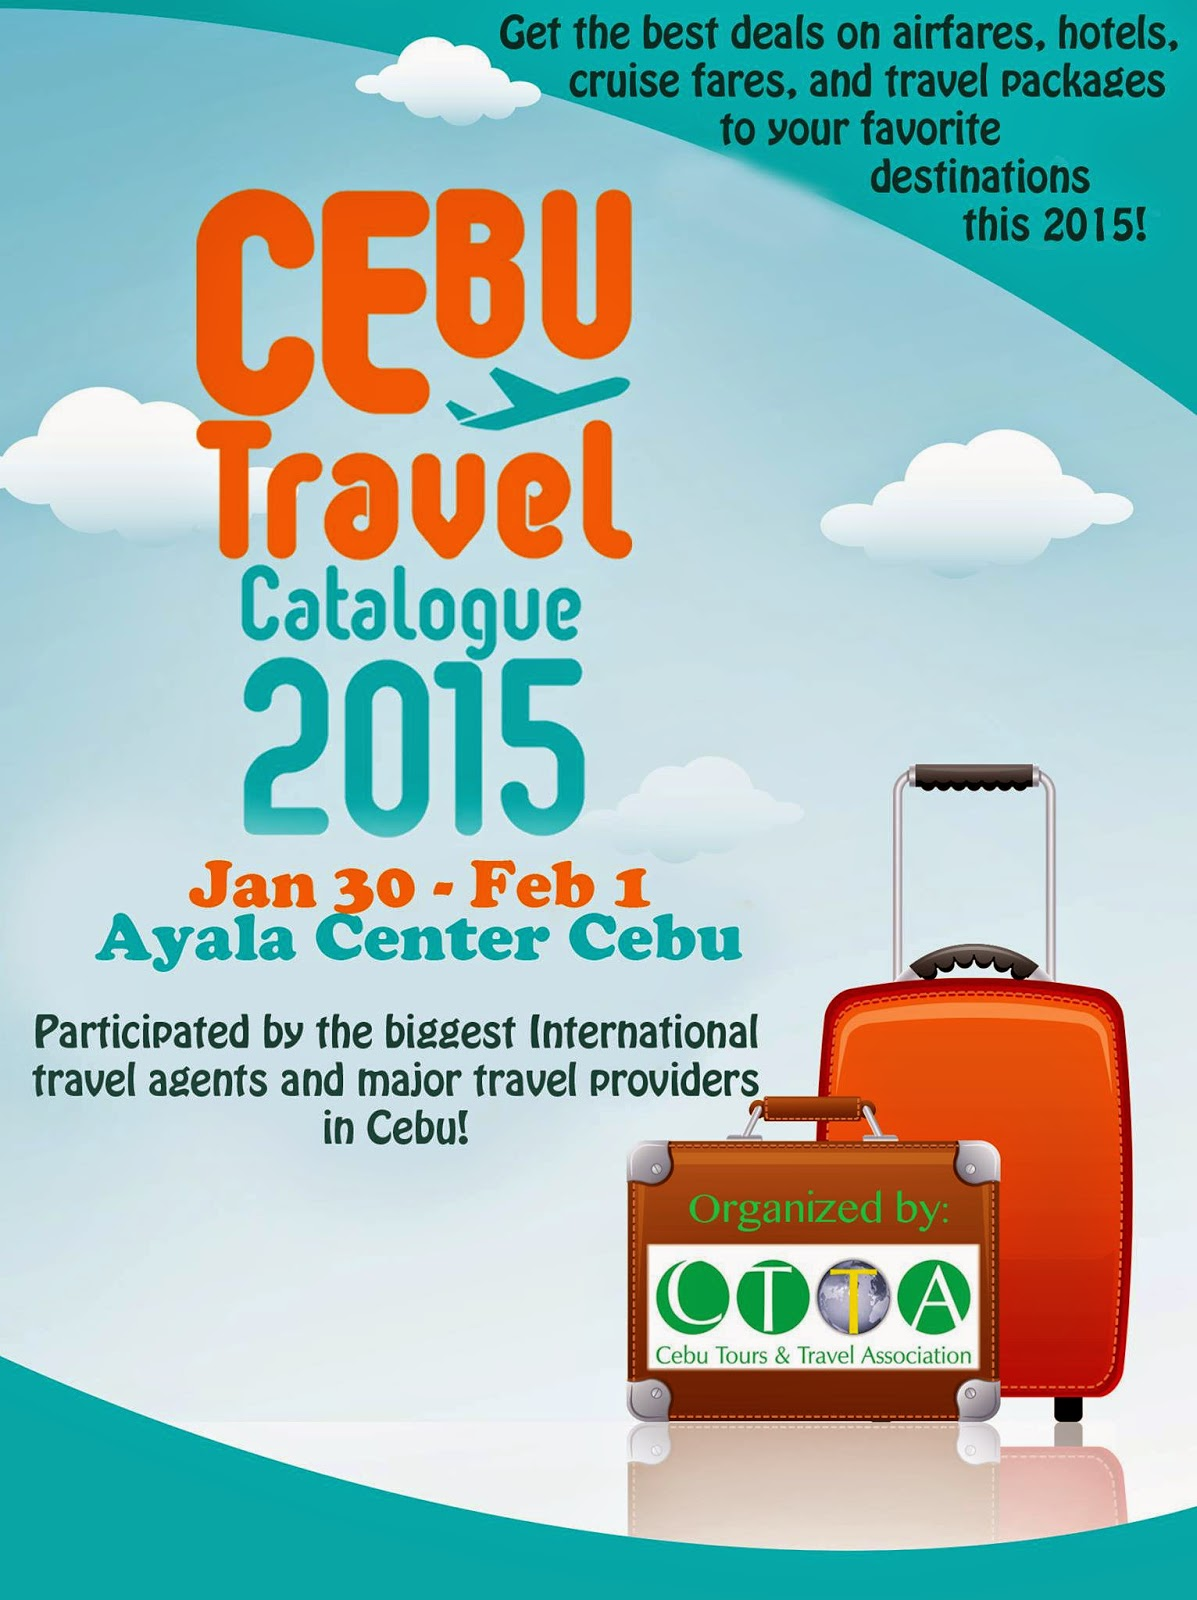 FTW! Blog, Cebu Travel Catalogue 2015, #cebutravelcatalogue2015, travel cebu, travel tips